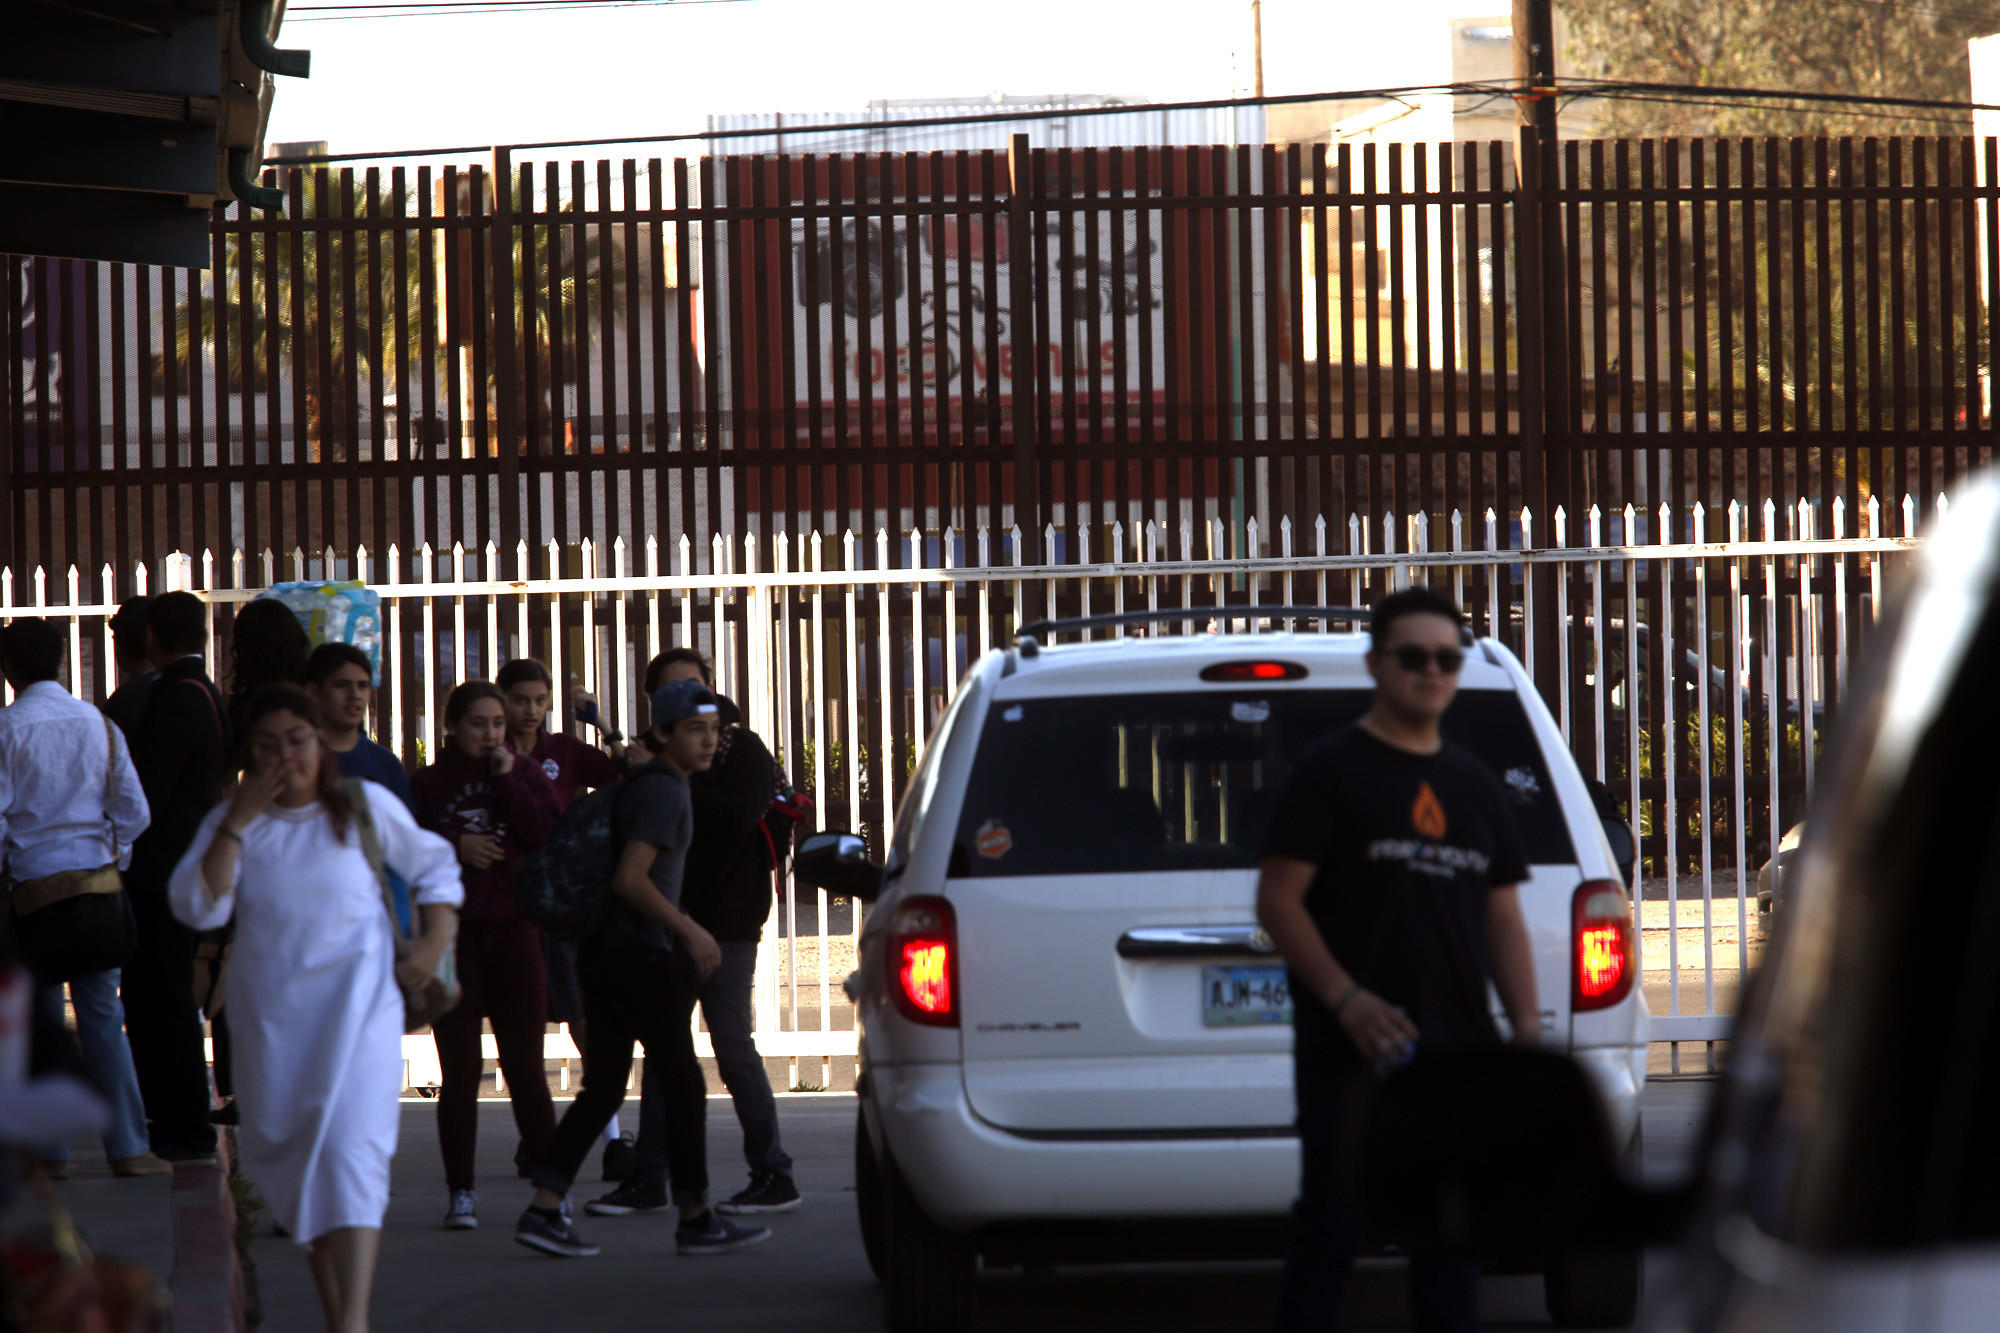 Students are dropped off and picked up in an area framed by the school fence in white and the brown U.S.-Mexico border fence.